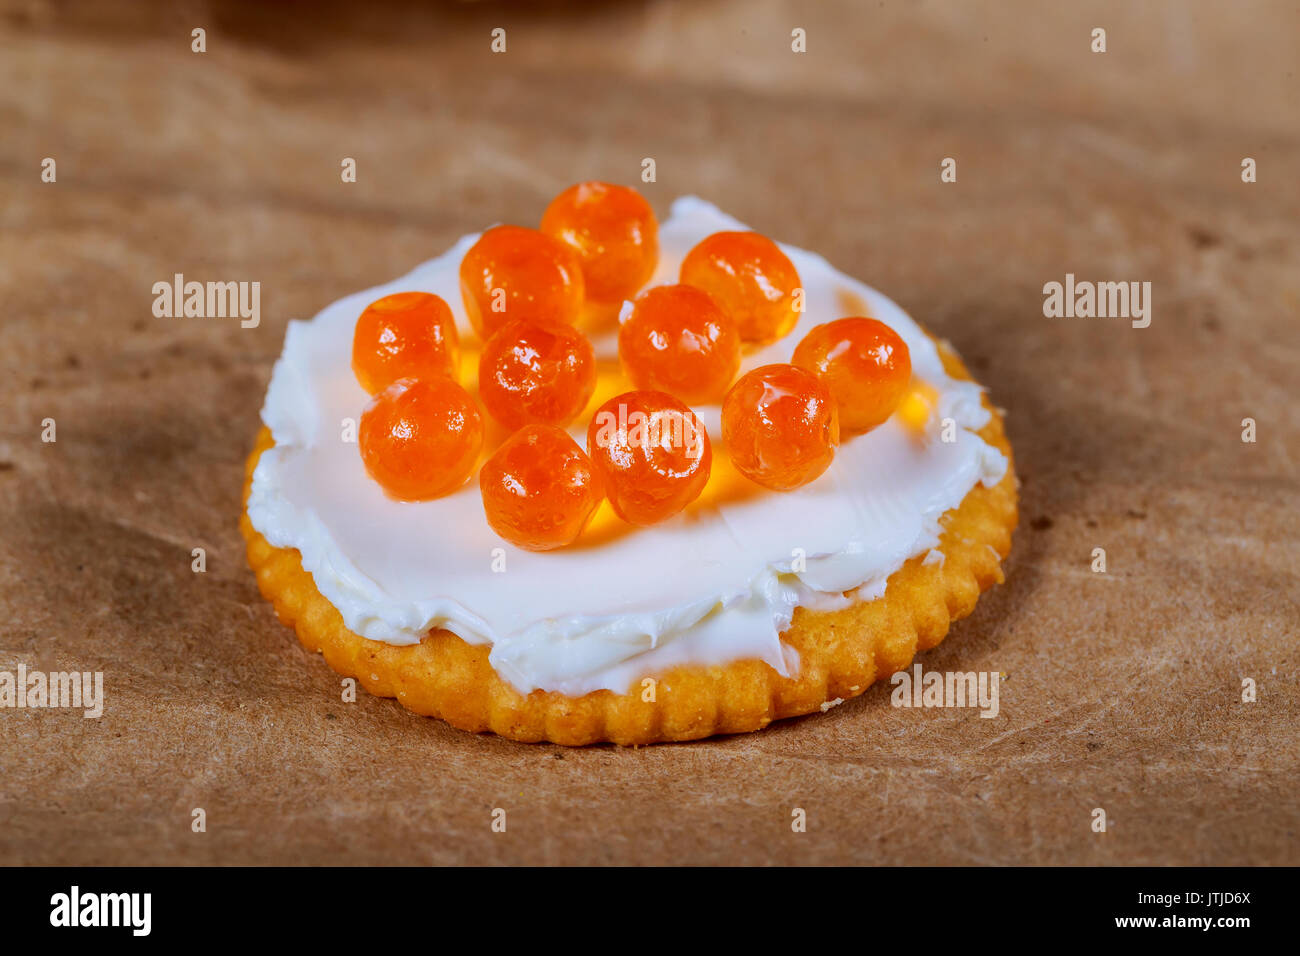 Caviar on the cracker red caviar on plate. Caviar on the background of a wooden table - Stock Image